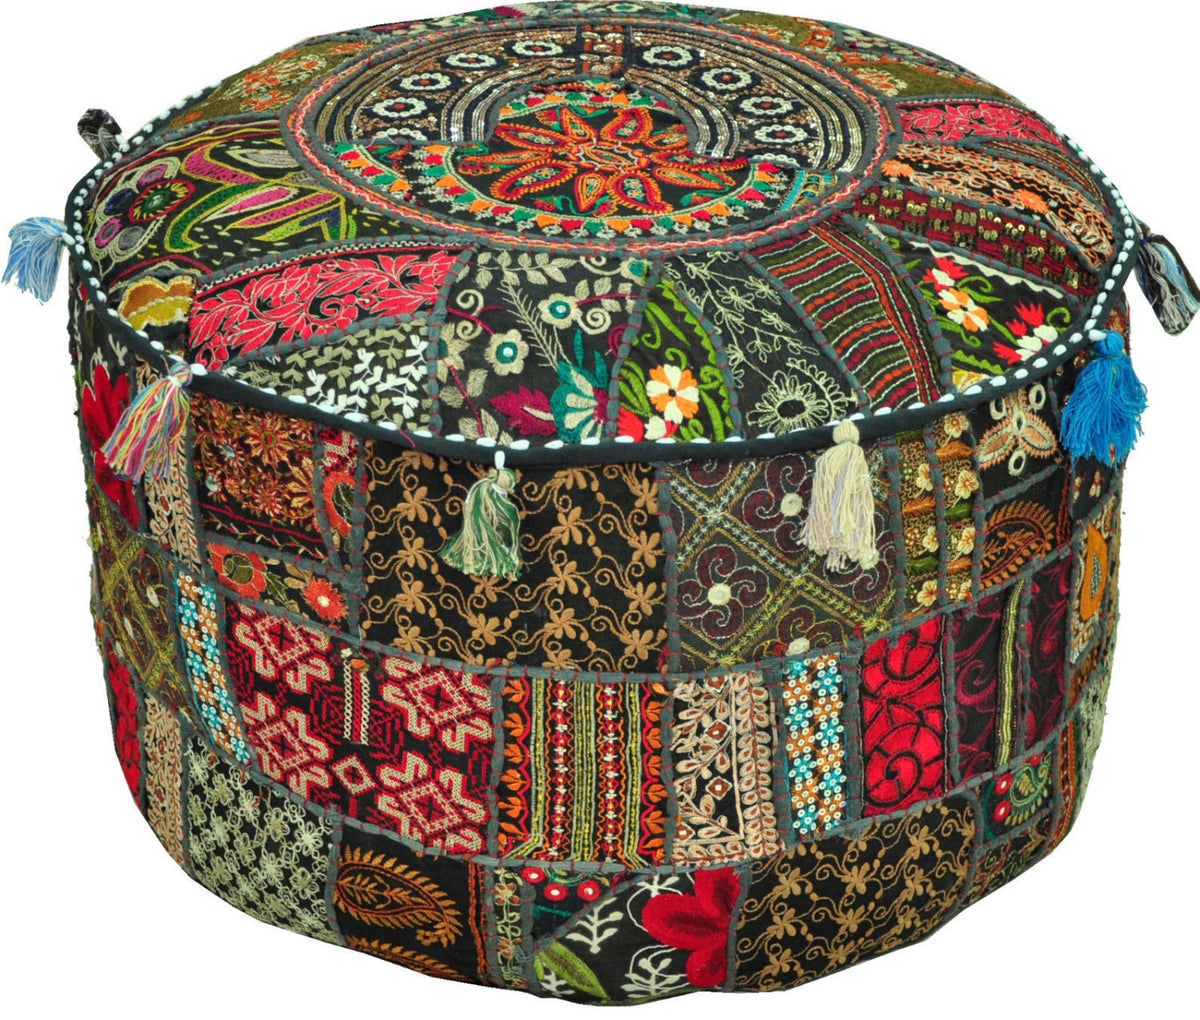 jaipurhandloom bohemian patchwork vintage indian pouf. Black Bedroom Furniture Sets. Home Design Ideas